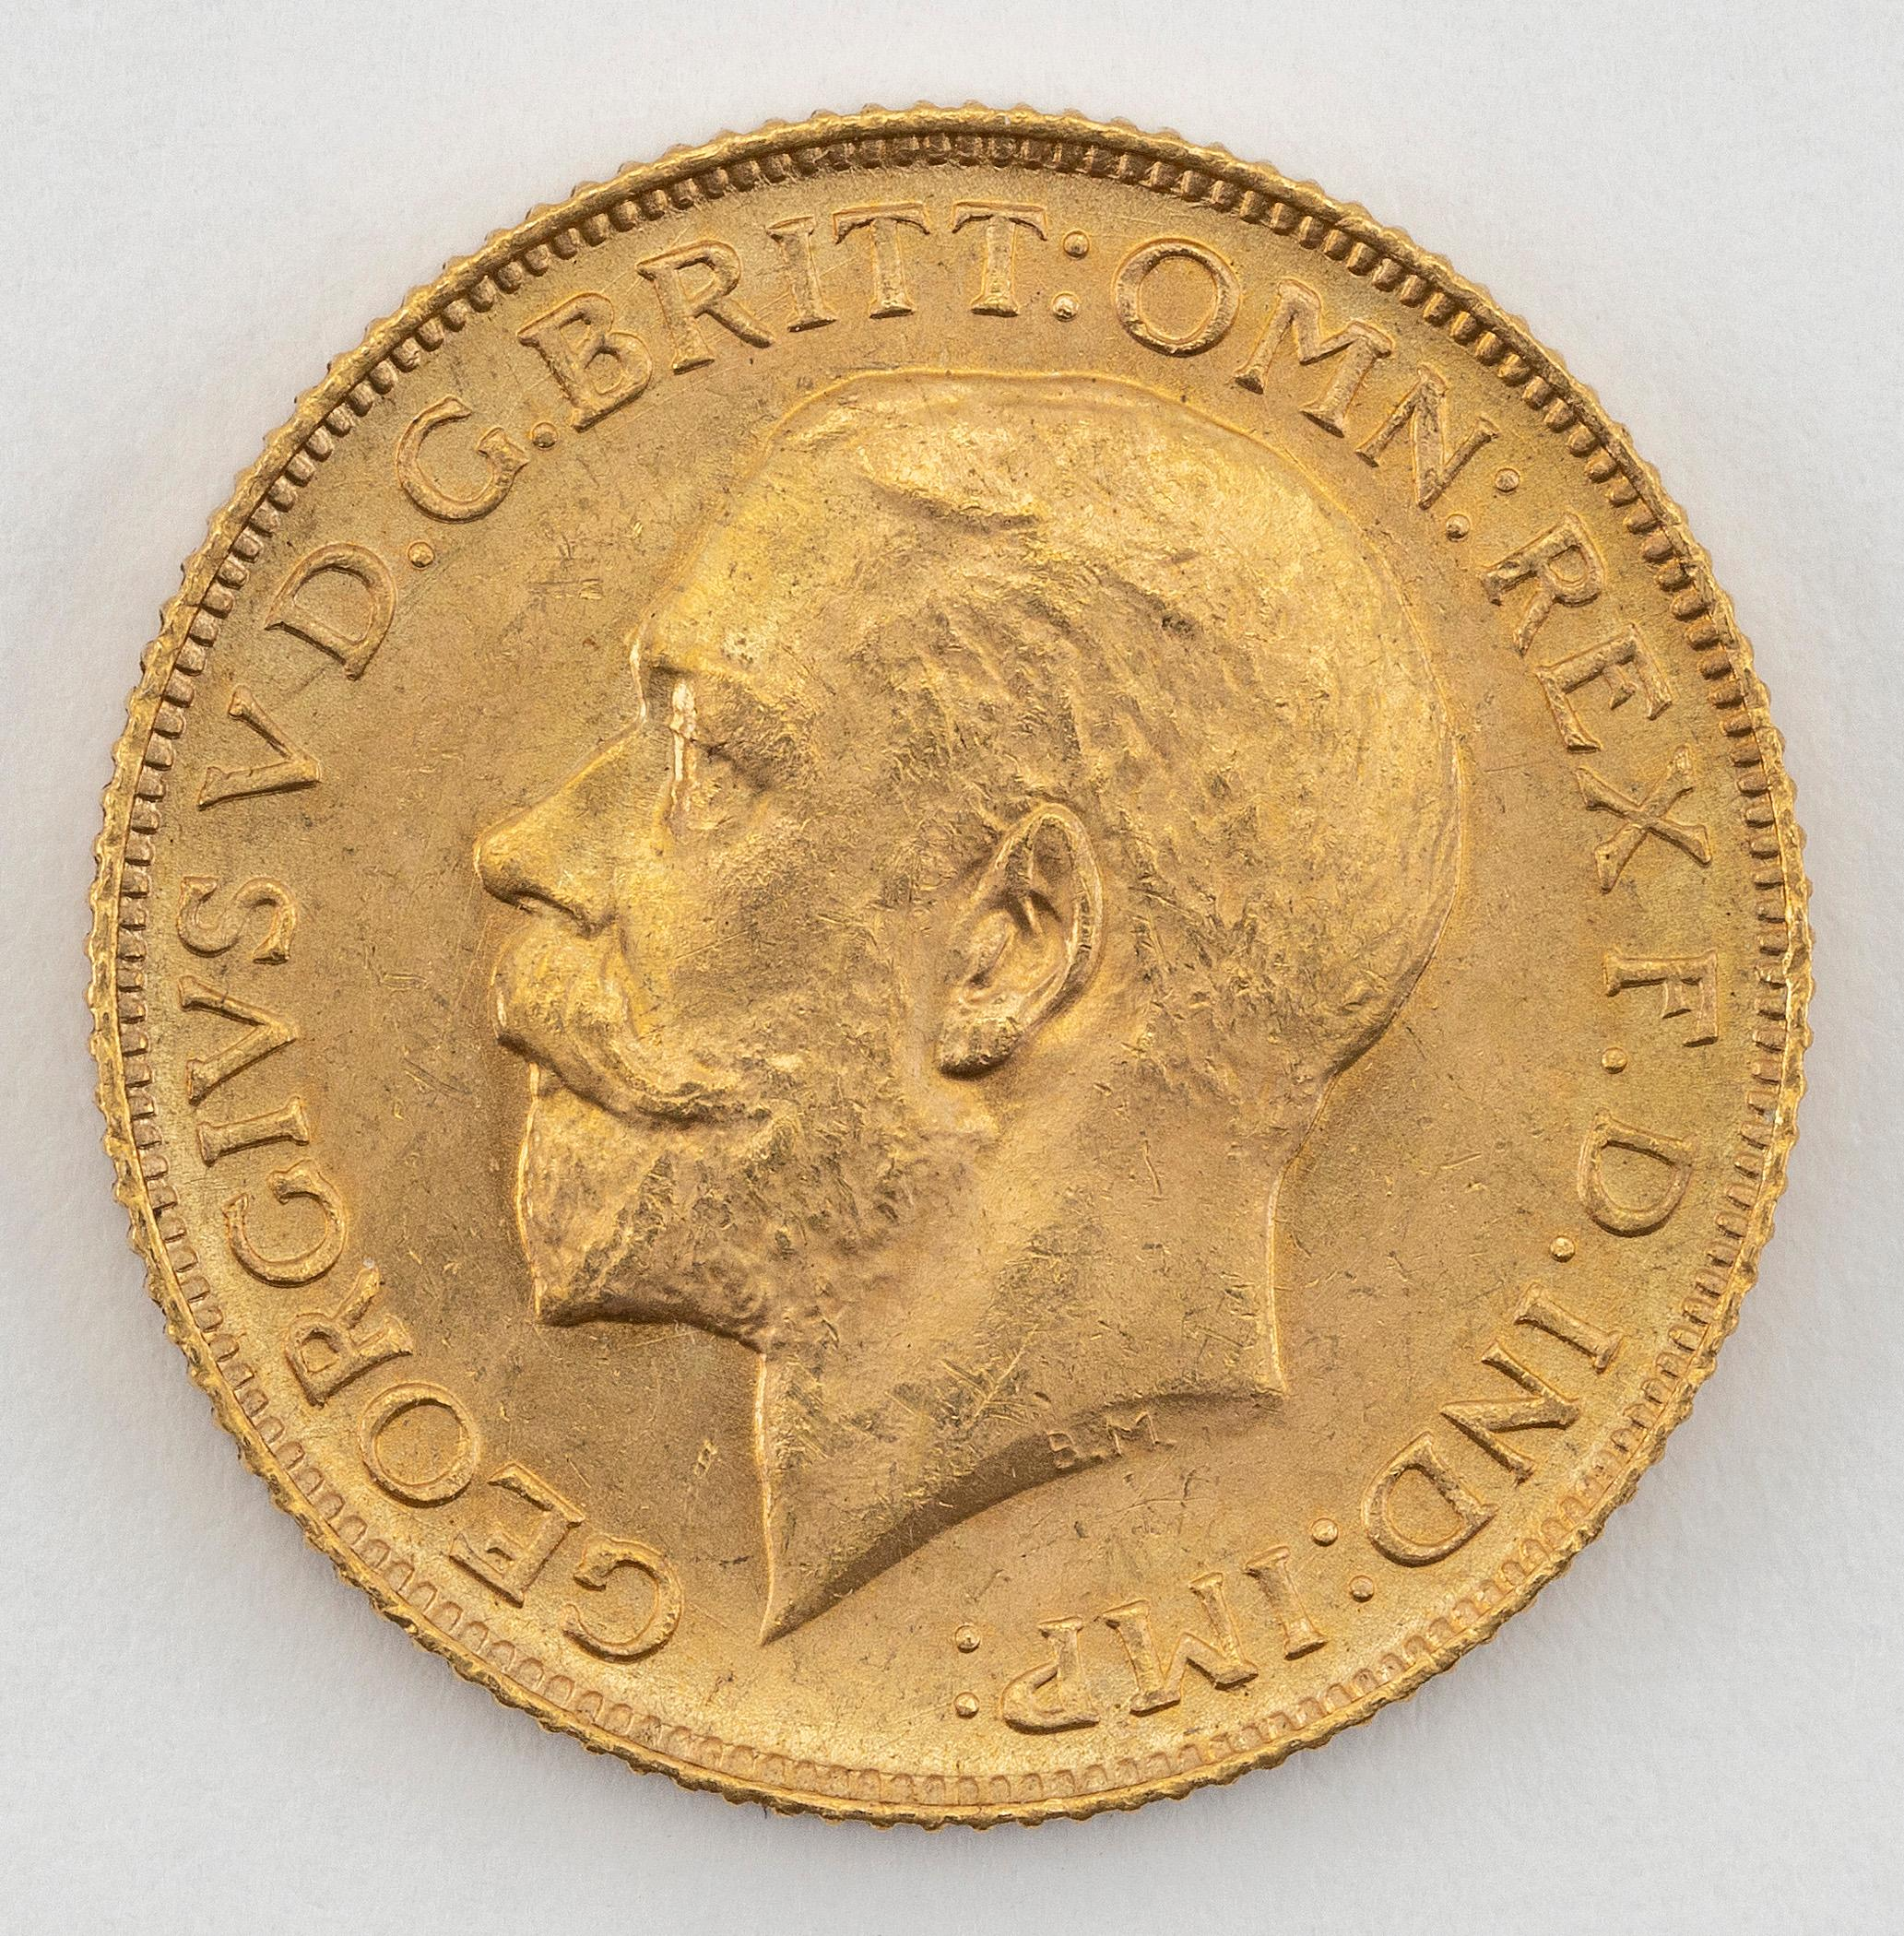 """1925 GREAT BRITAIN GEORGE V SOVEREIGN GOLD COIN Diameter 1""""."""